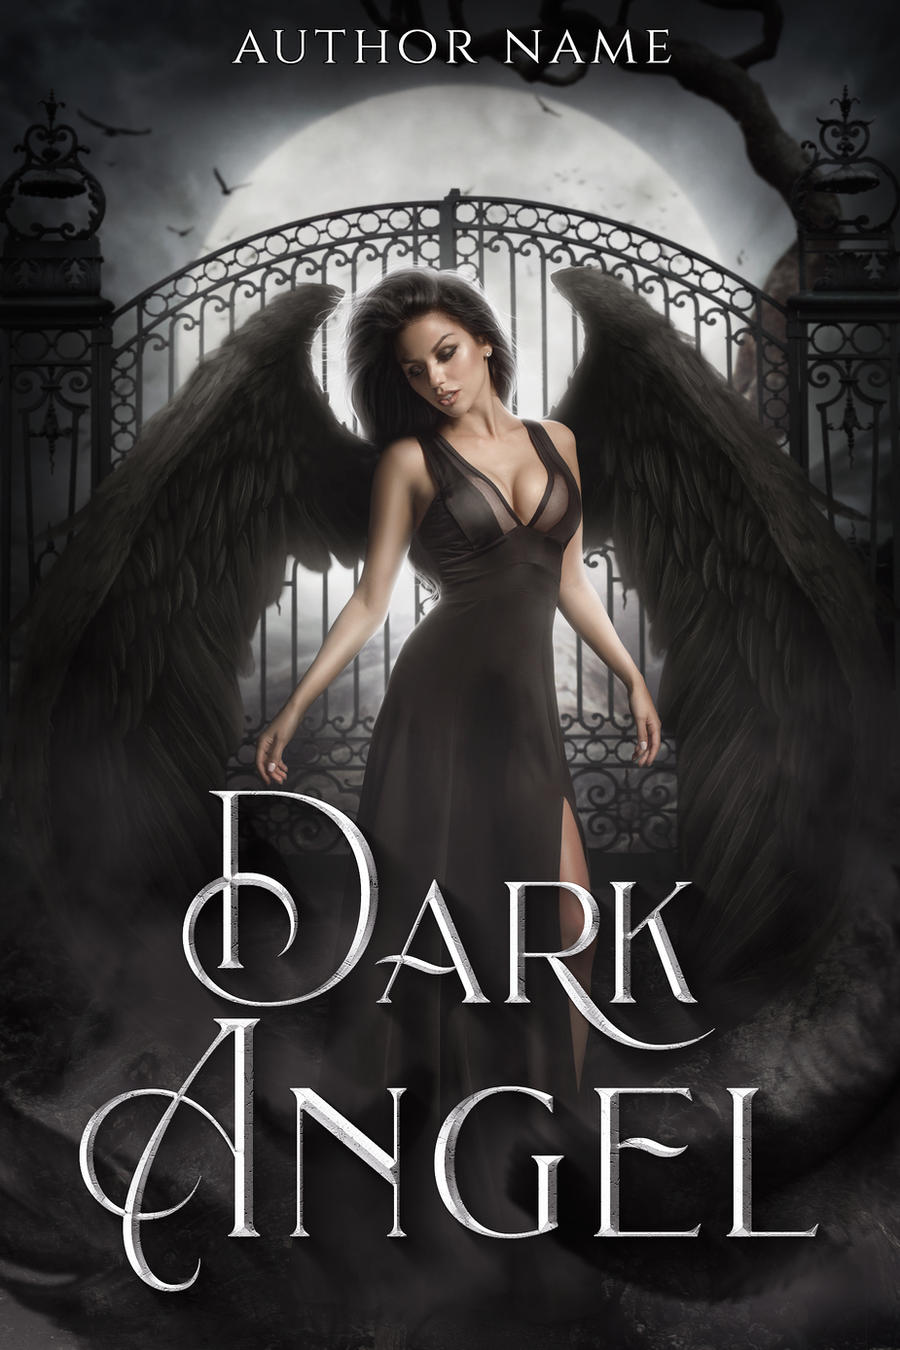 DARK ANGEL premade book cover